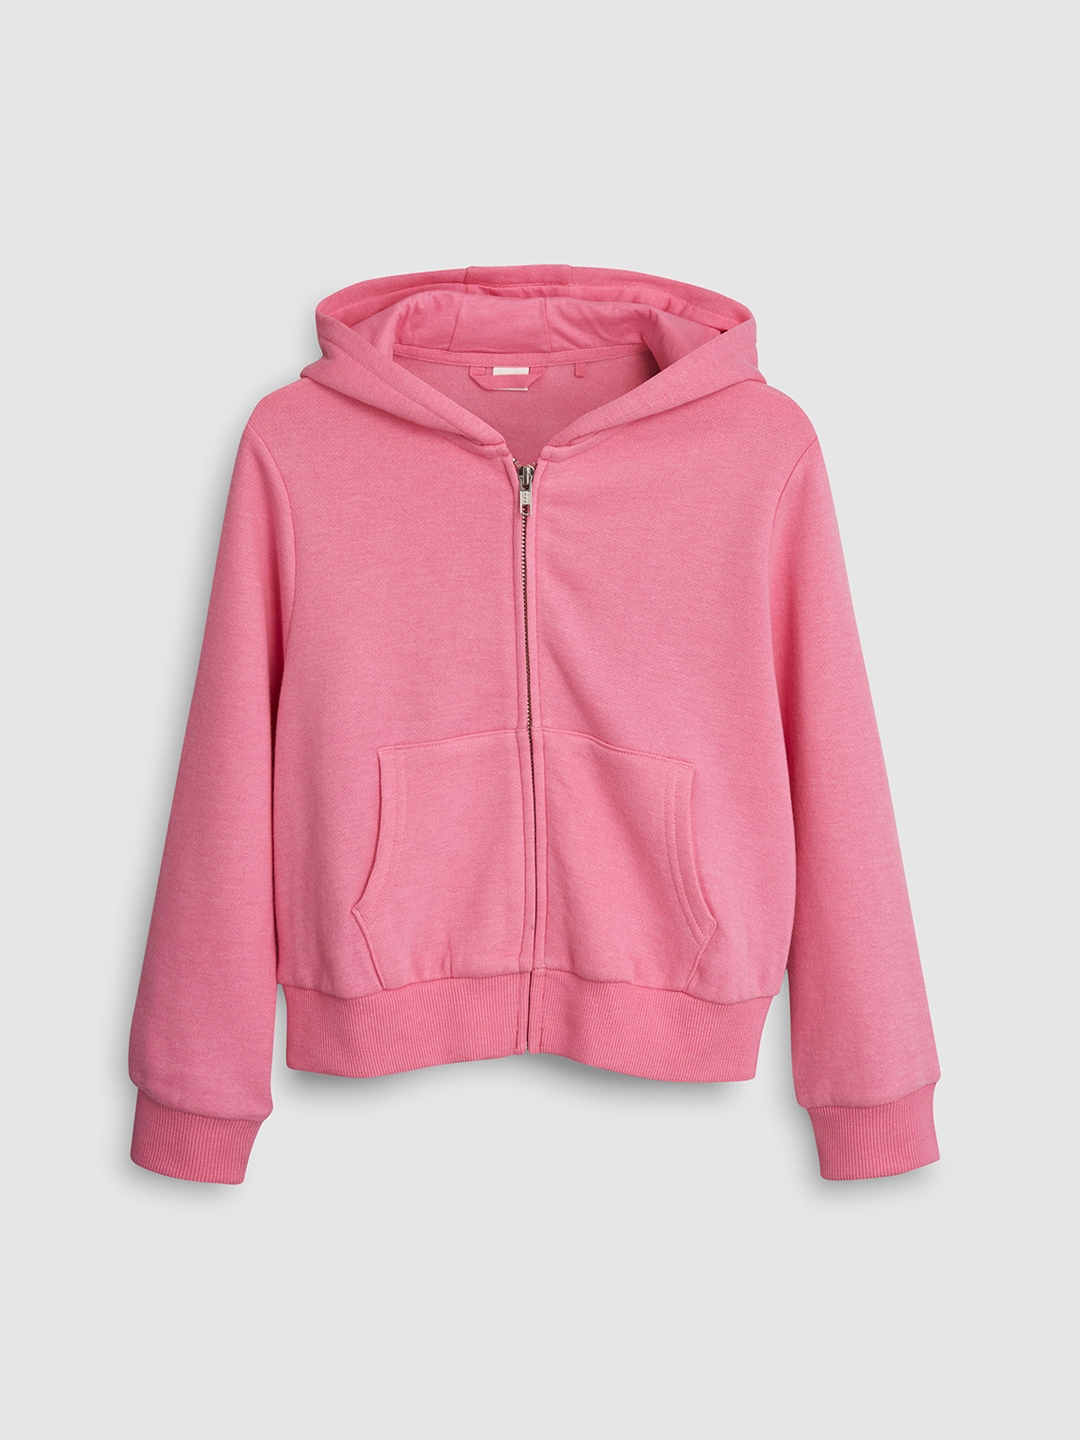 ba8e8989b0c Buy Next Girls Pink Solid Hooded Sweatshirt - Sweatshirts for Girls ...